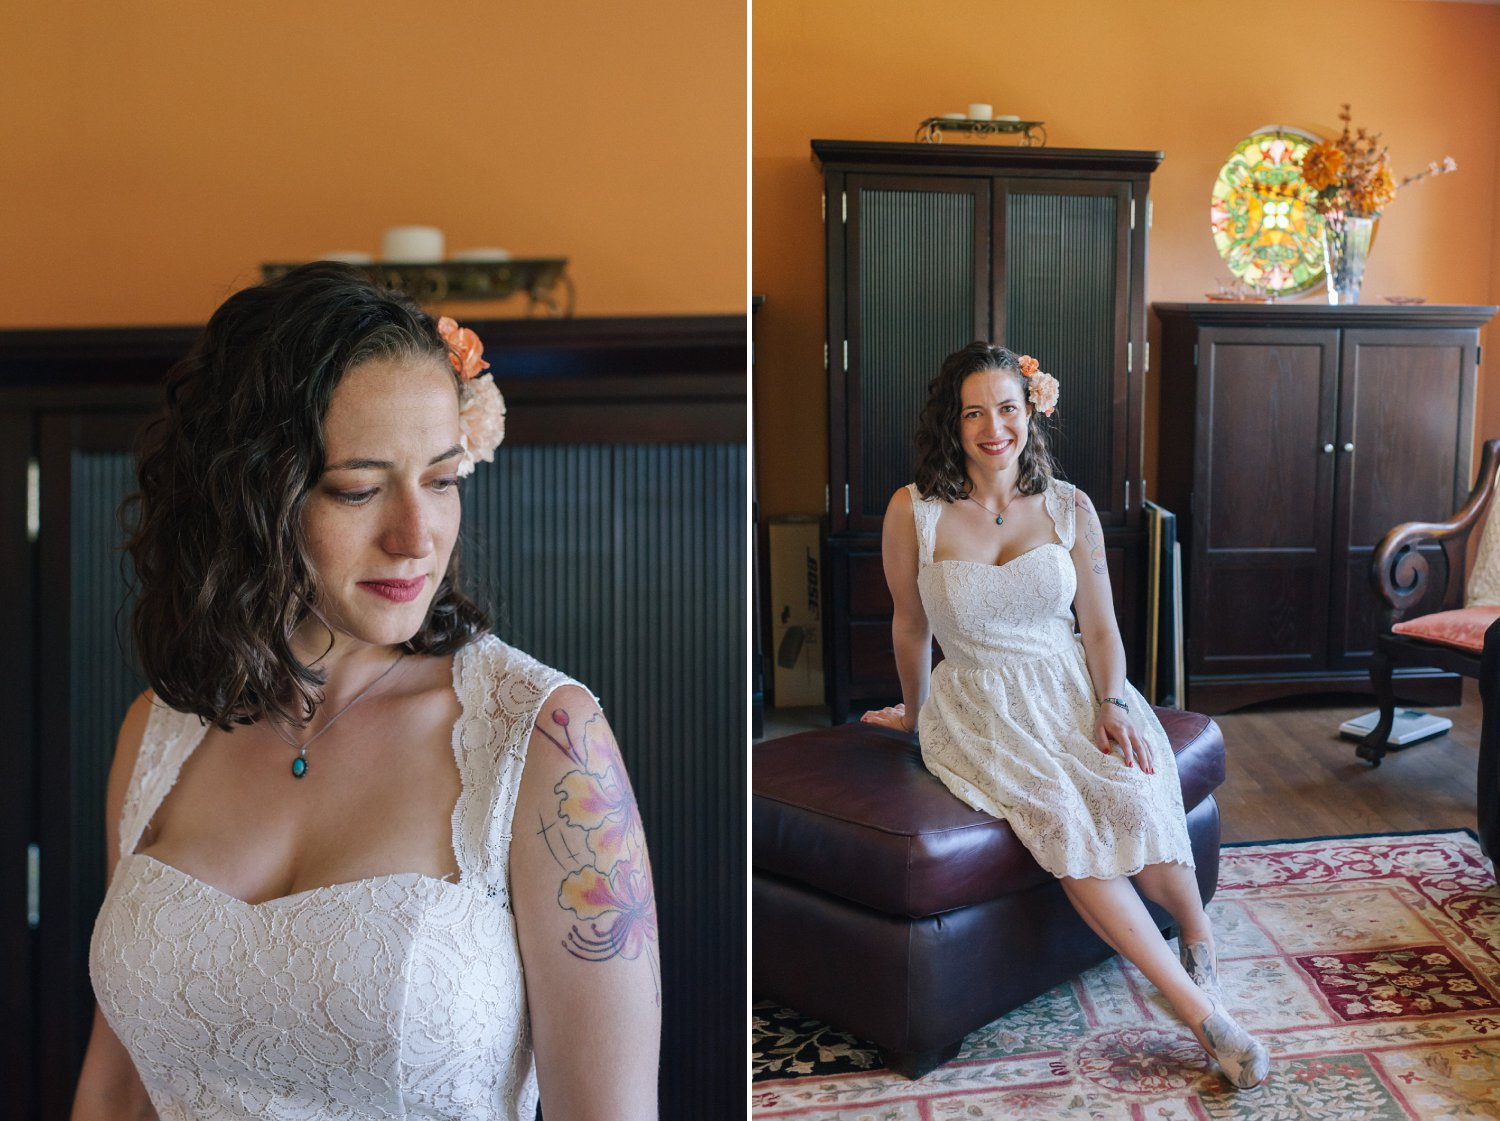 Arizona nontraditional bride at home with short lace dress and flowers in hair